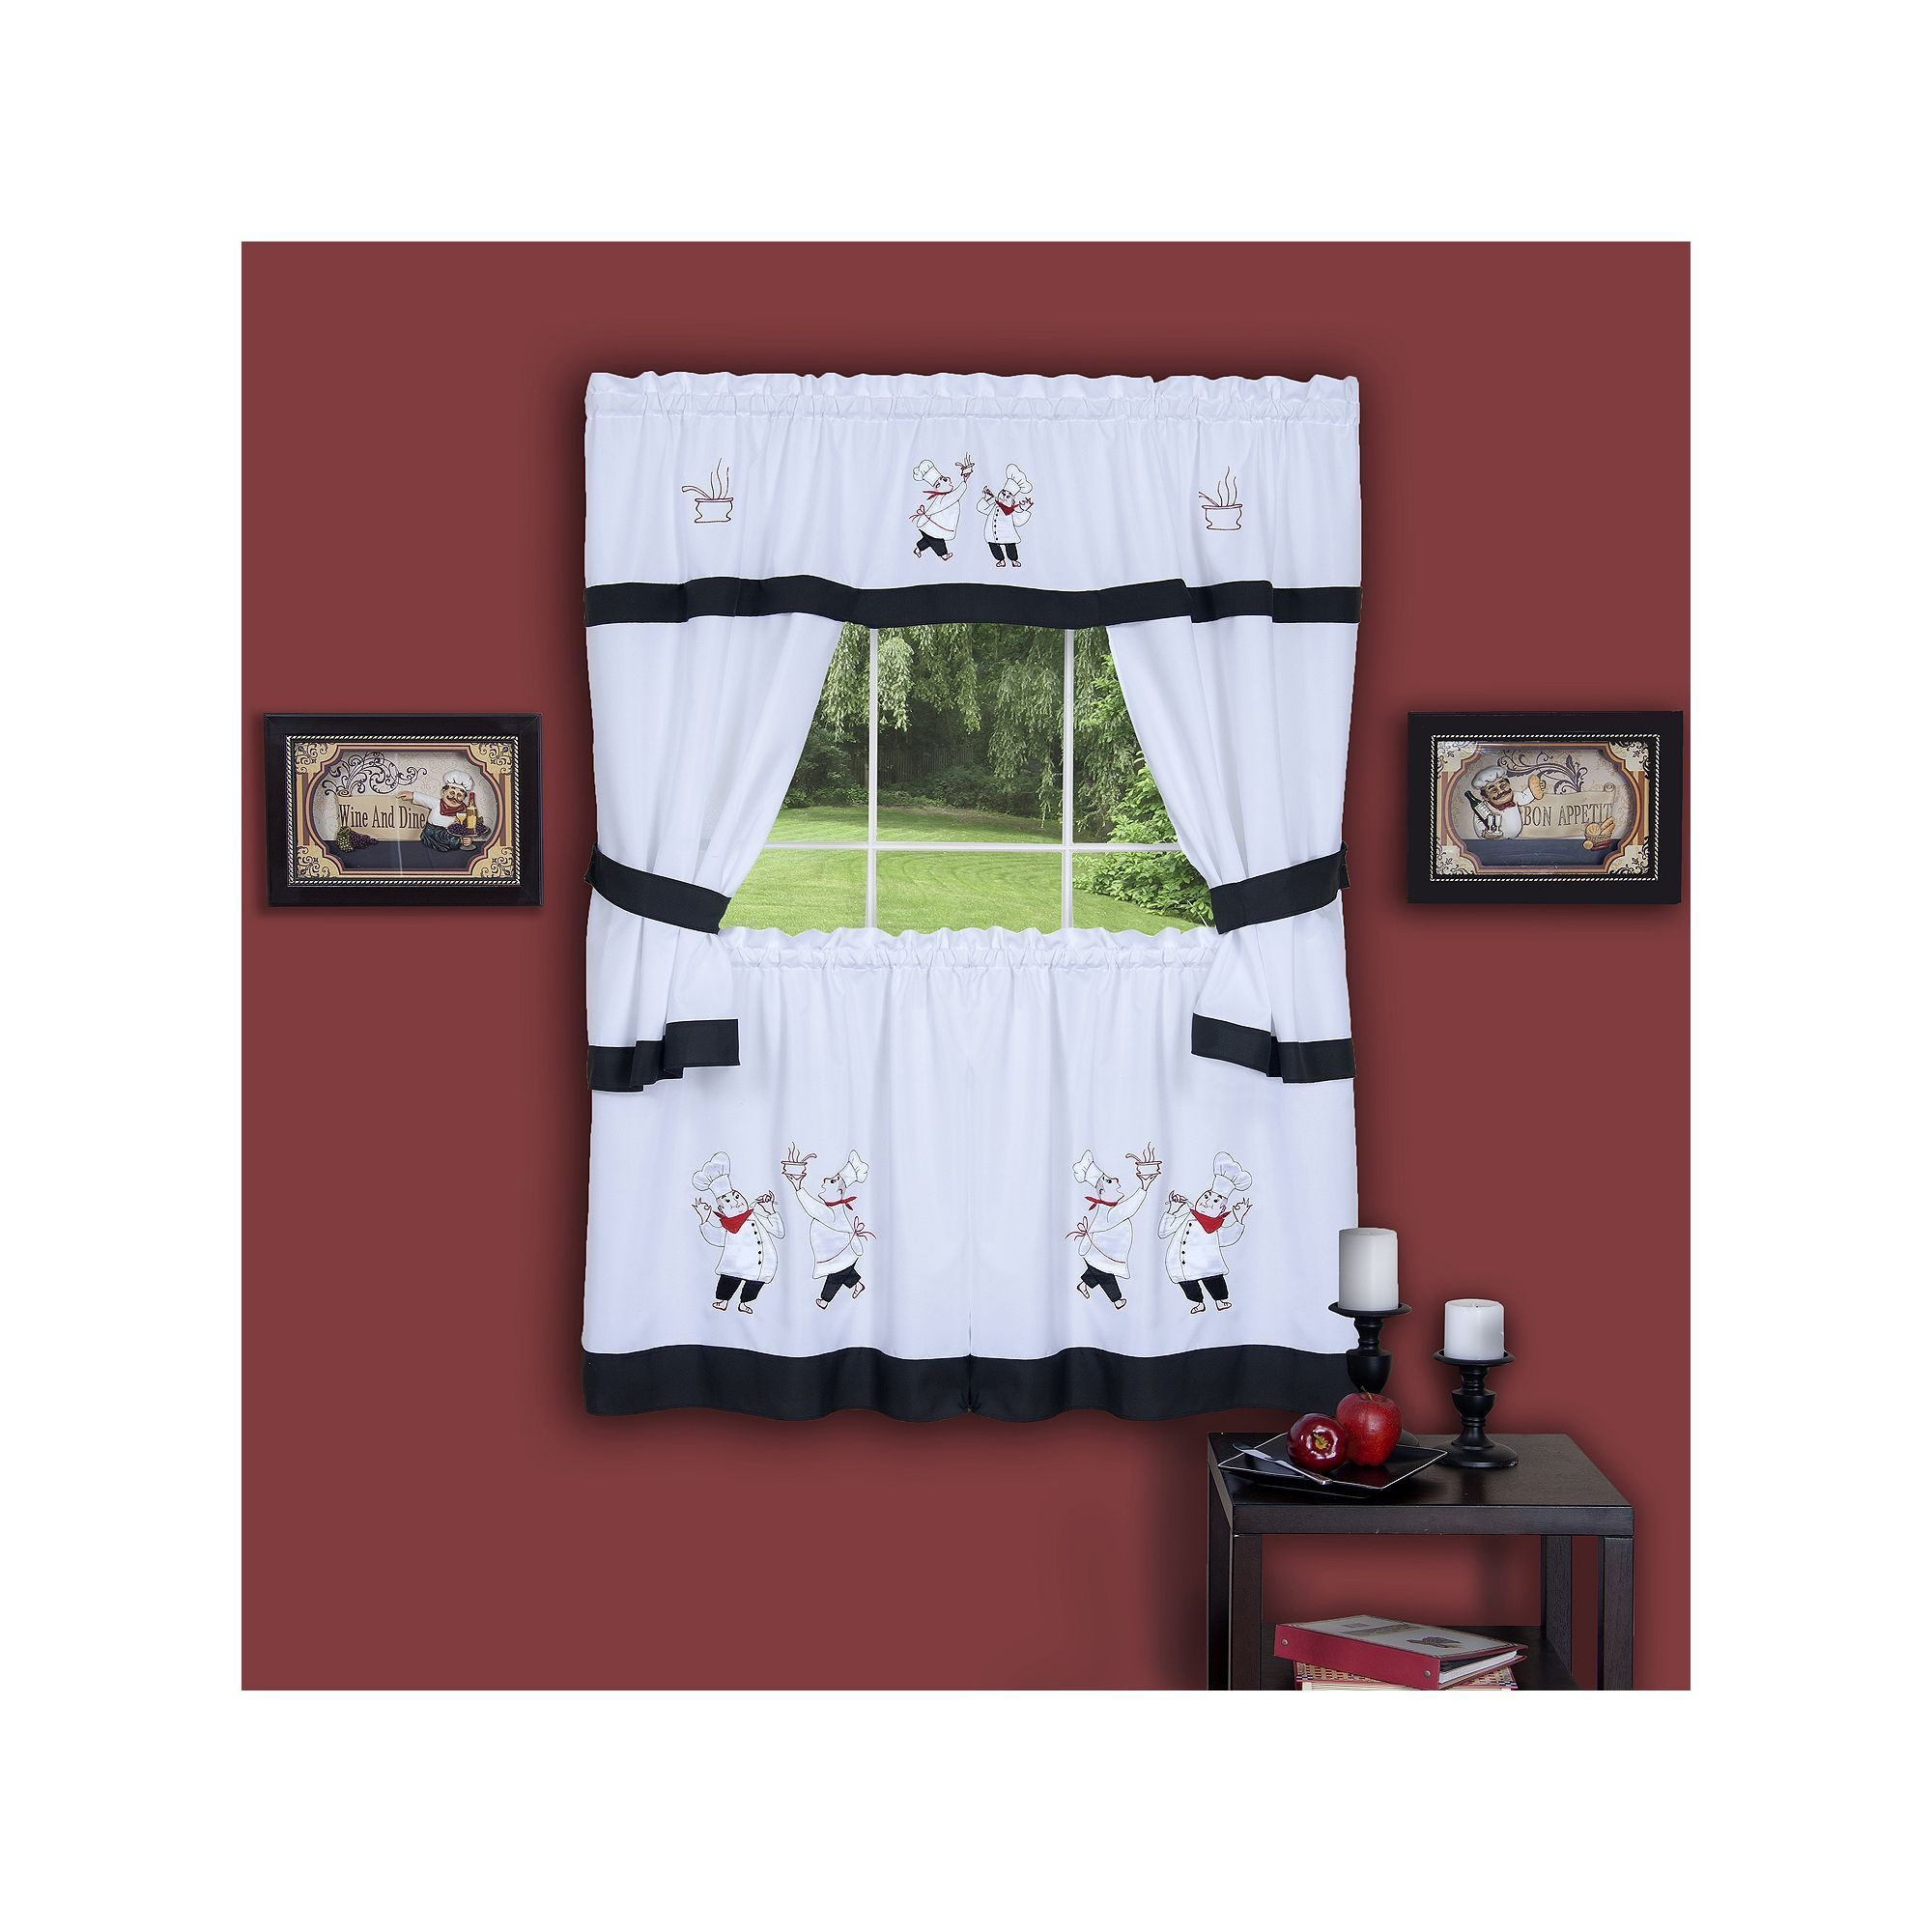 Gourmet Chef 5piece Tier Swag Kitchen Window Curtain Set